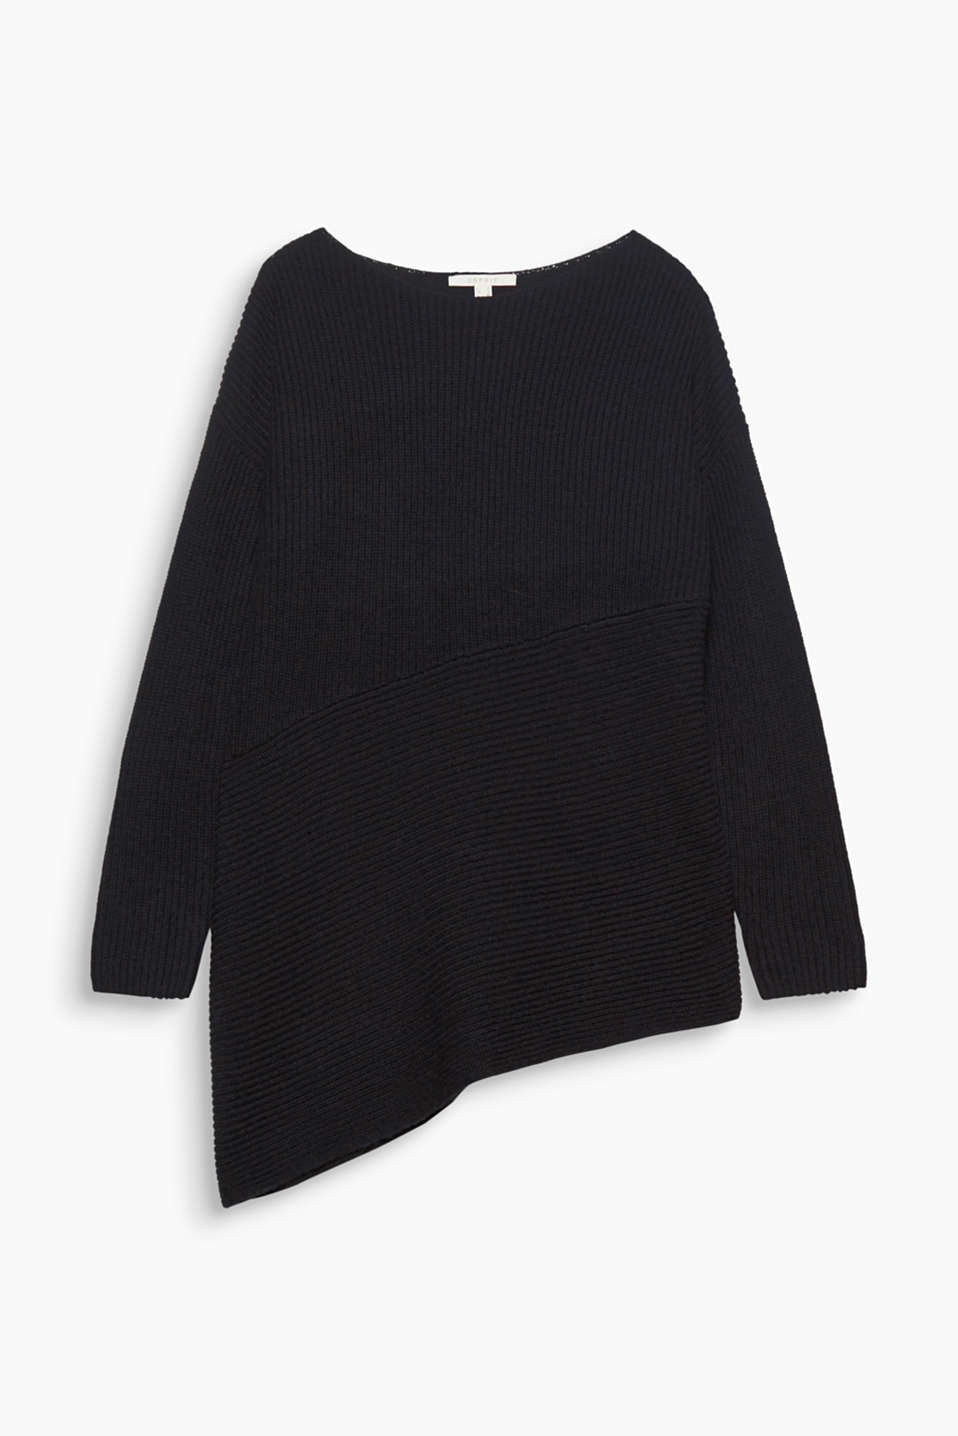 The longer, asymmetric shape and soft ribbed knit make this pullover a modern winter basic